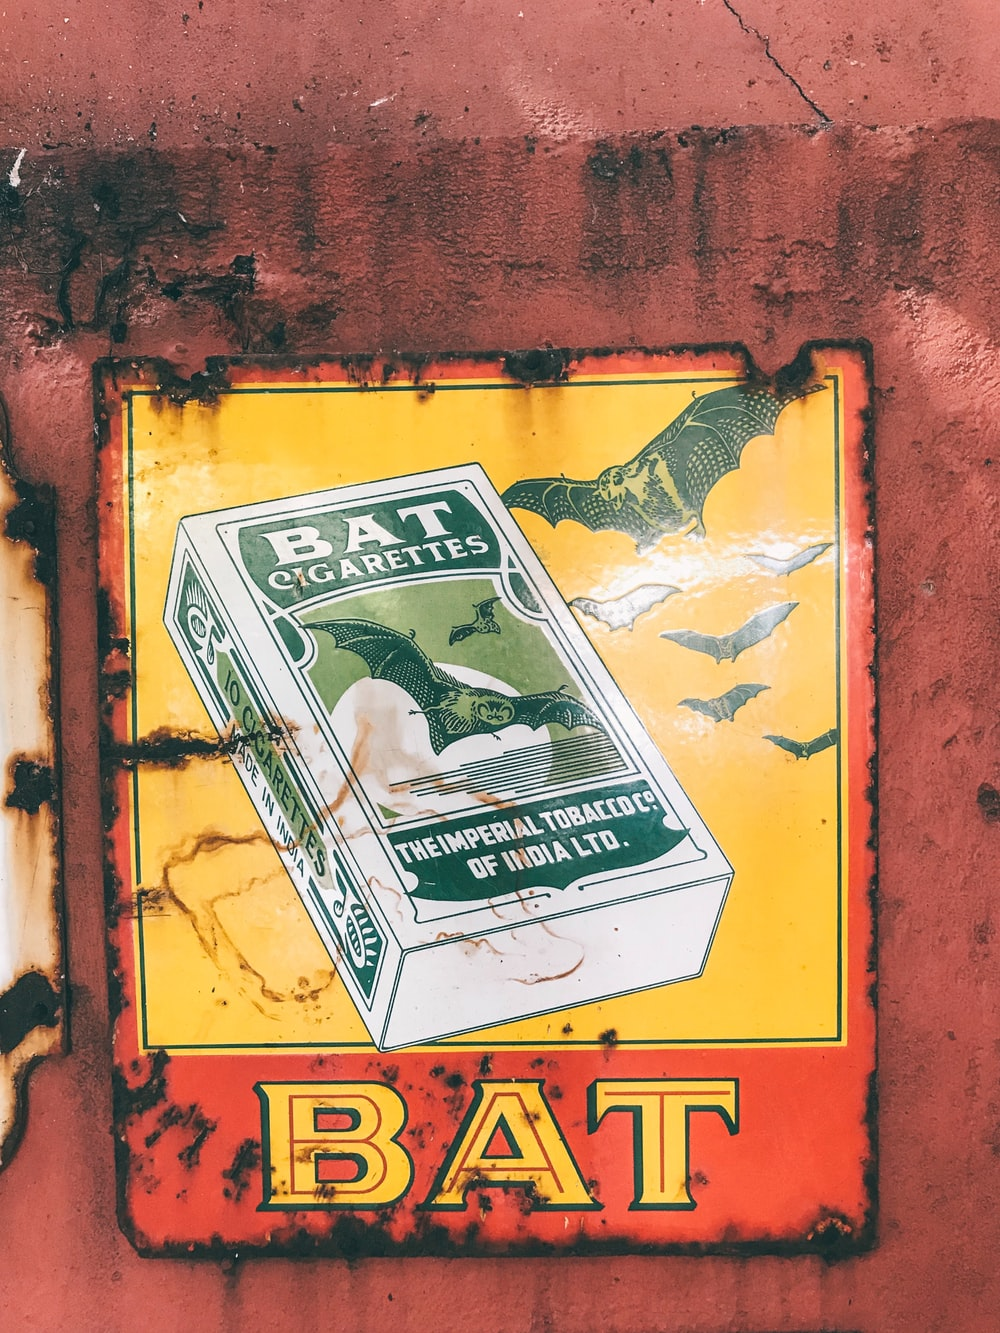 Bat Cigarettes poster on red wall